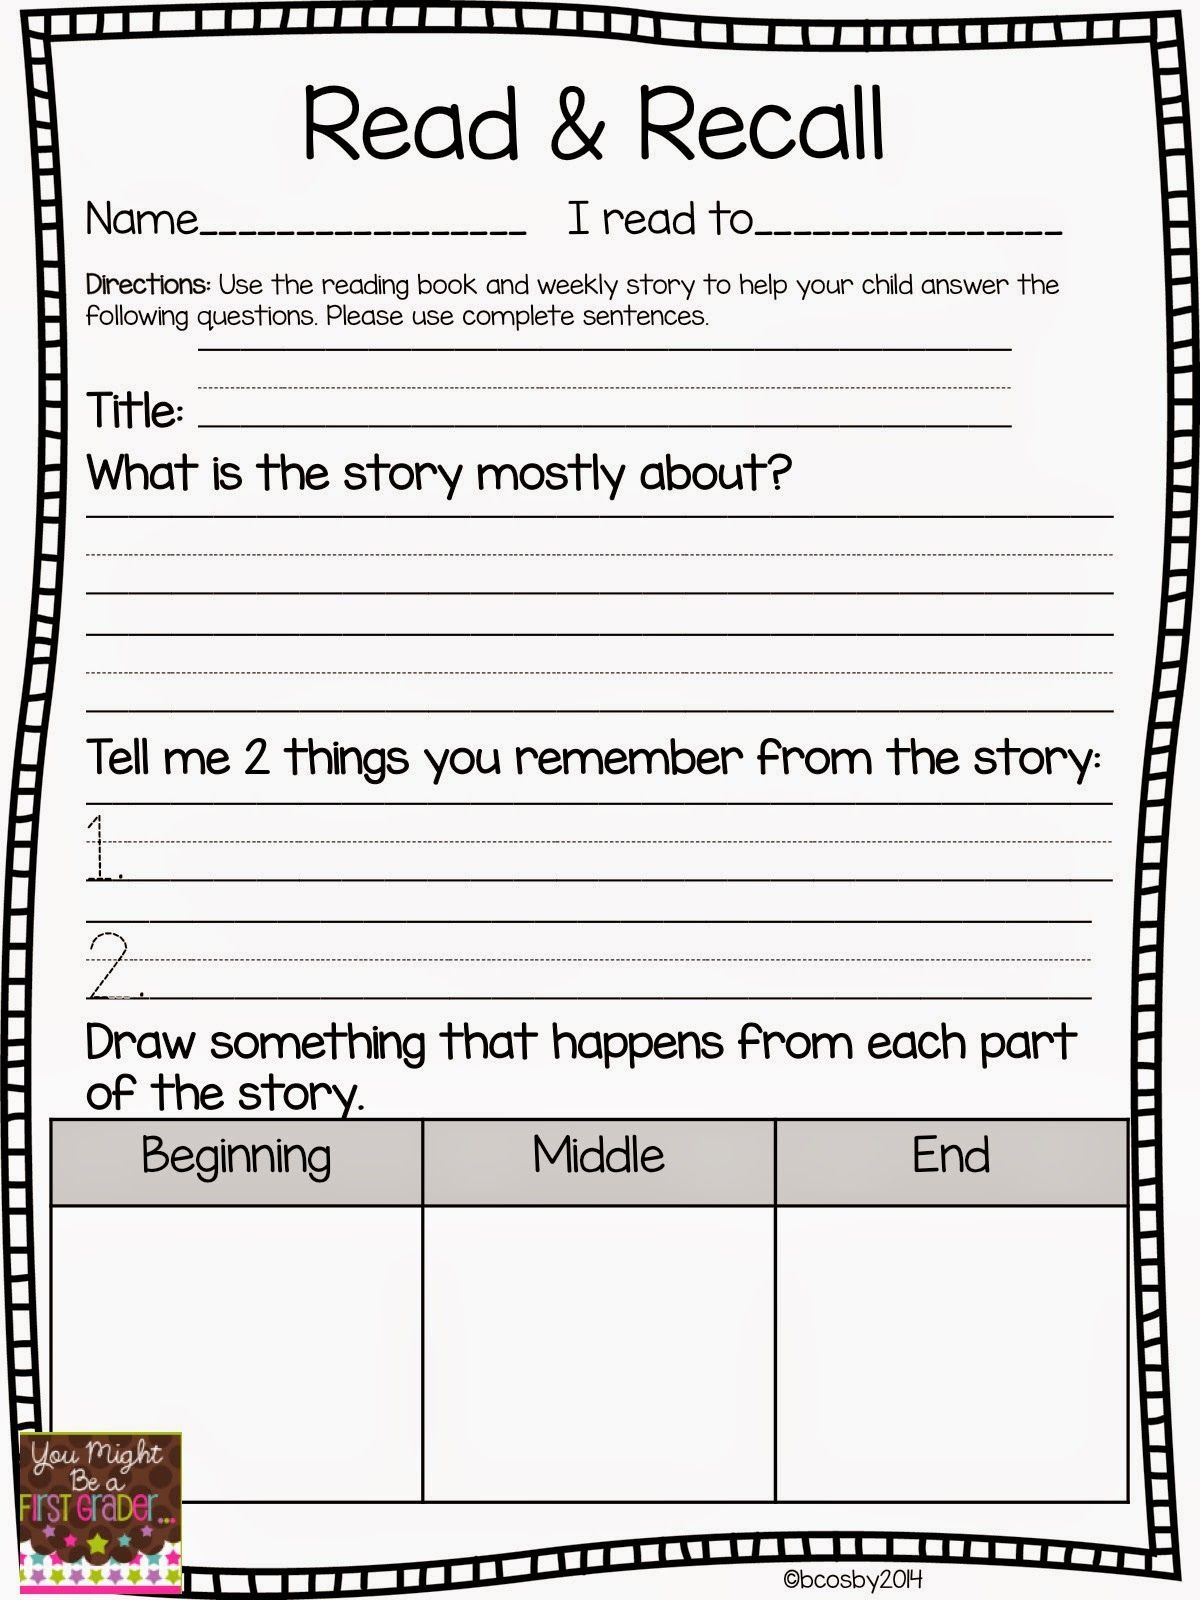 Free Printable Science Worksheets For 2Nd Grade | Free ...